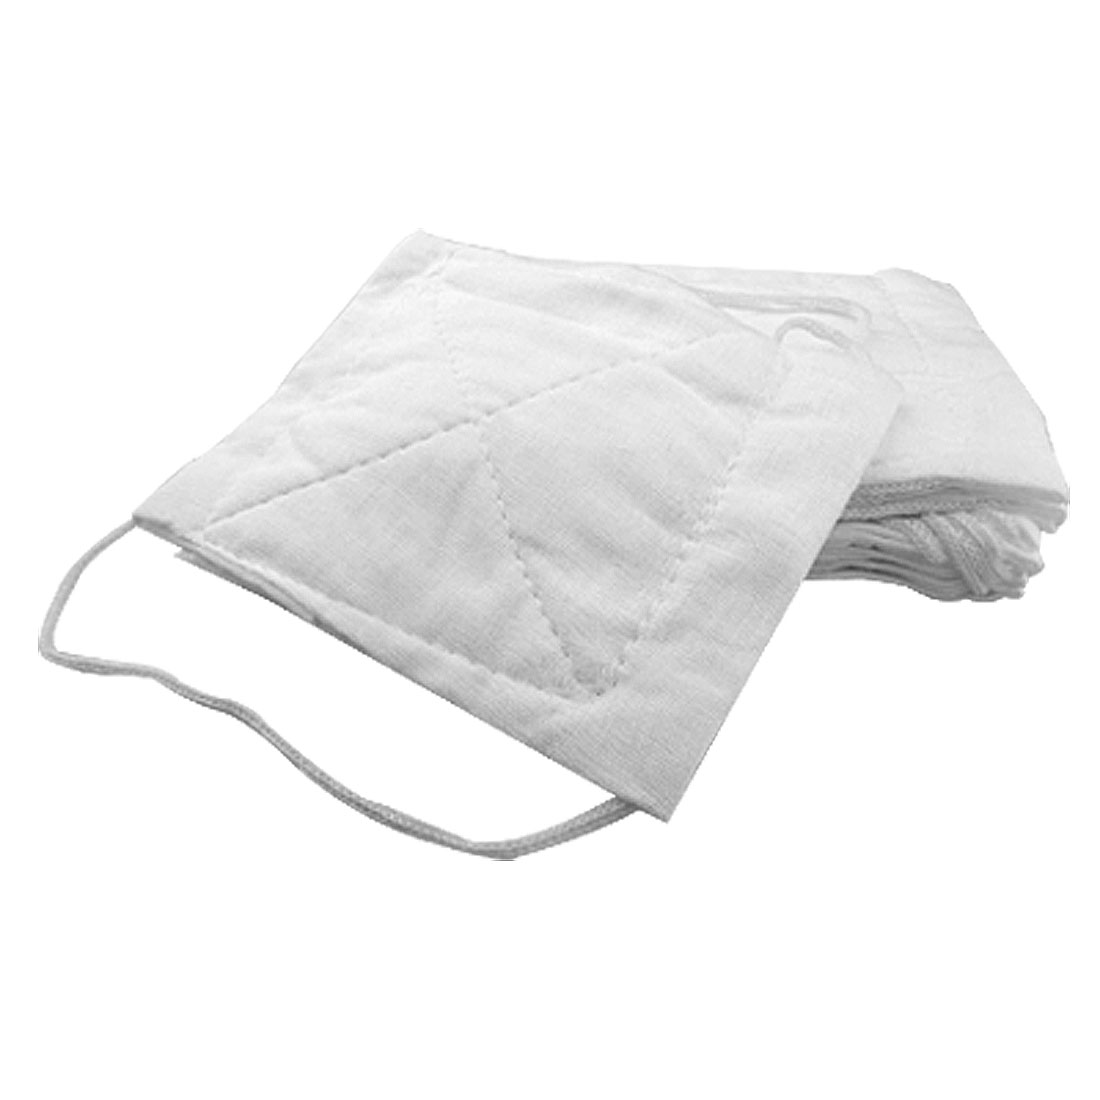 Soft Comfy White Respirator Face Mask